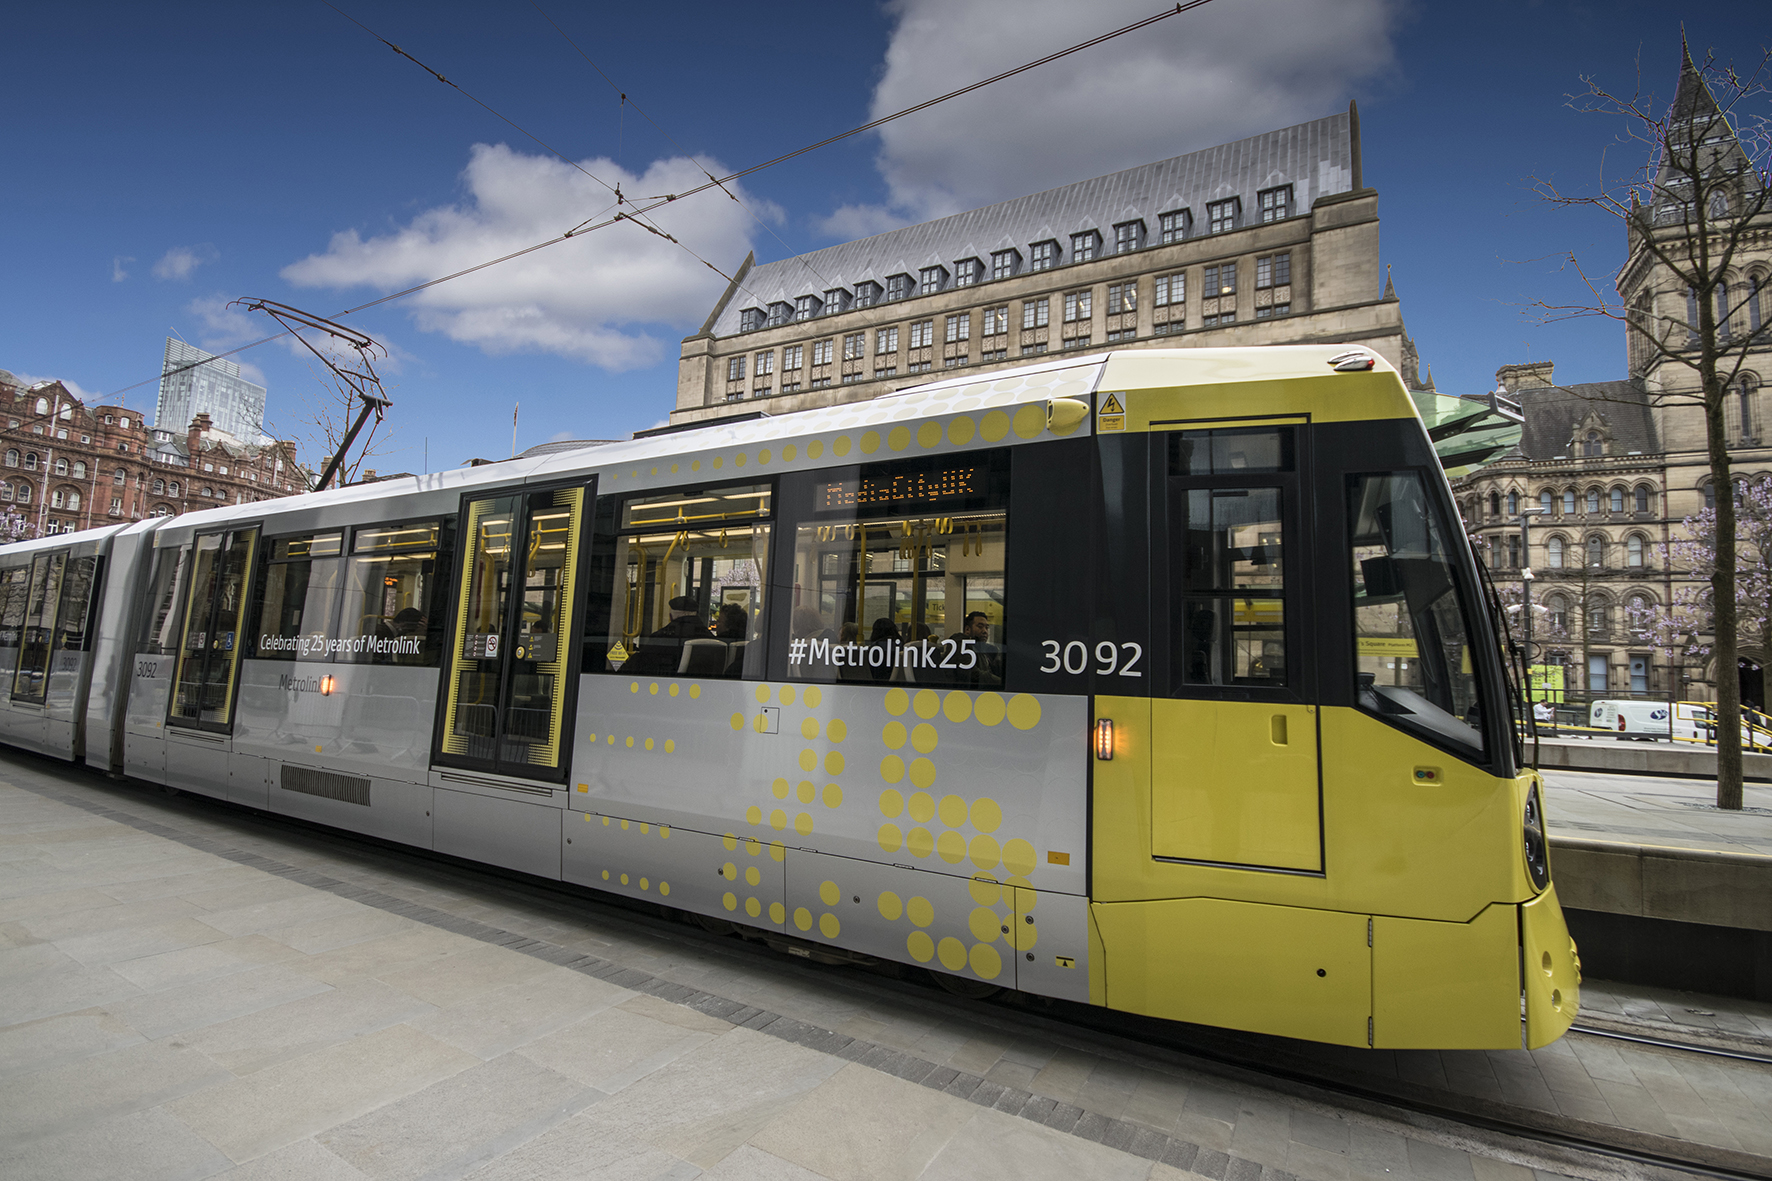 Picture of a tram in St Peters Square